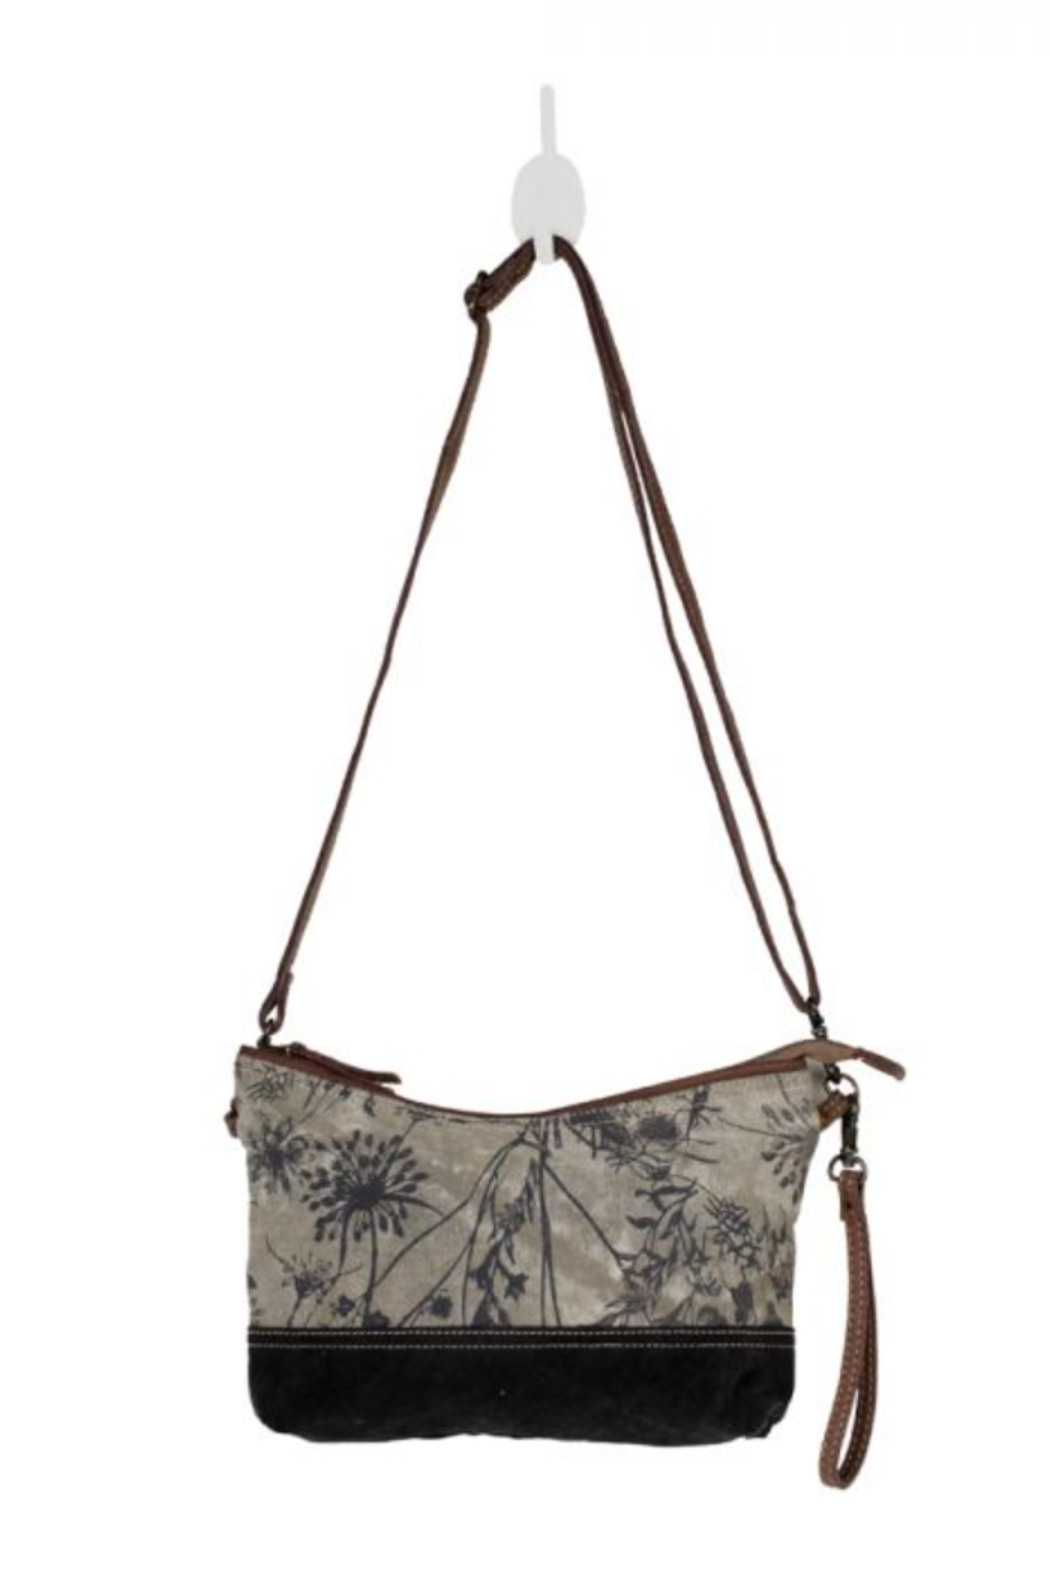 MarkWEST-Myra Bag Dainty Delight Small & Cross Body Bag - Front Cropped Image